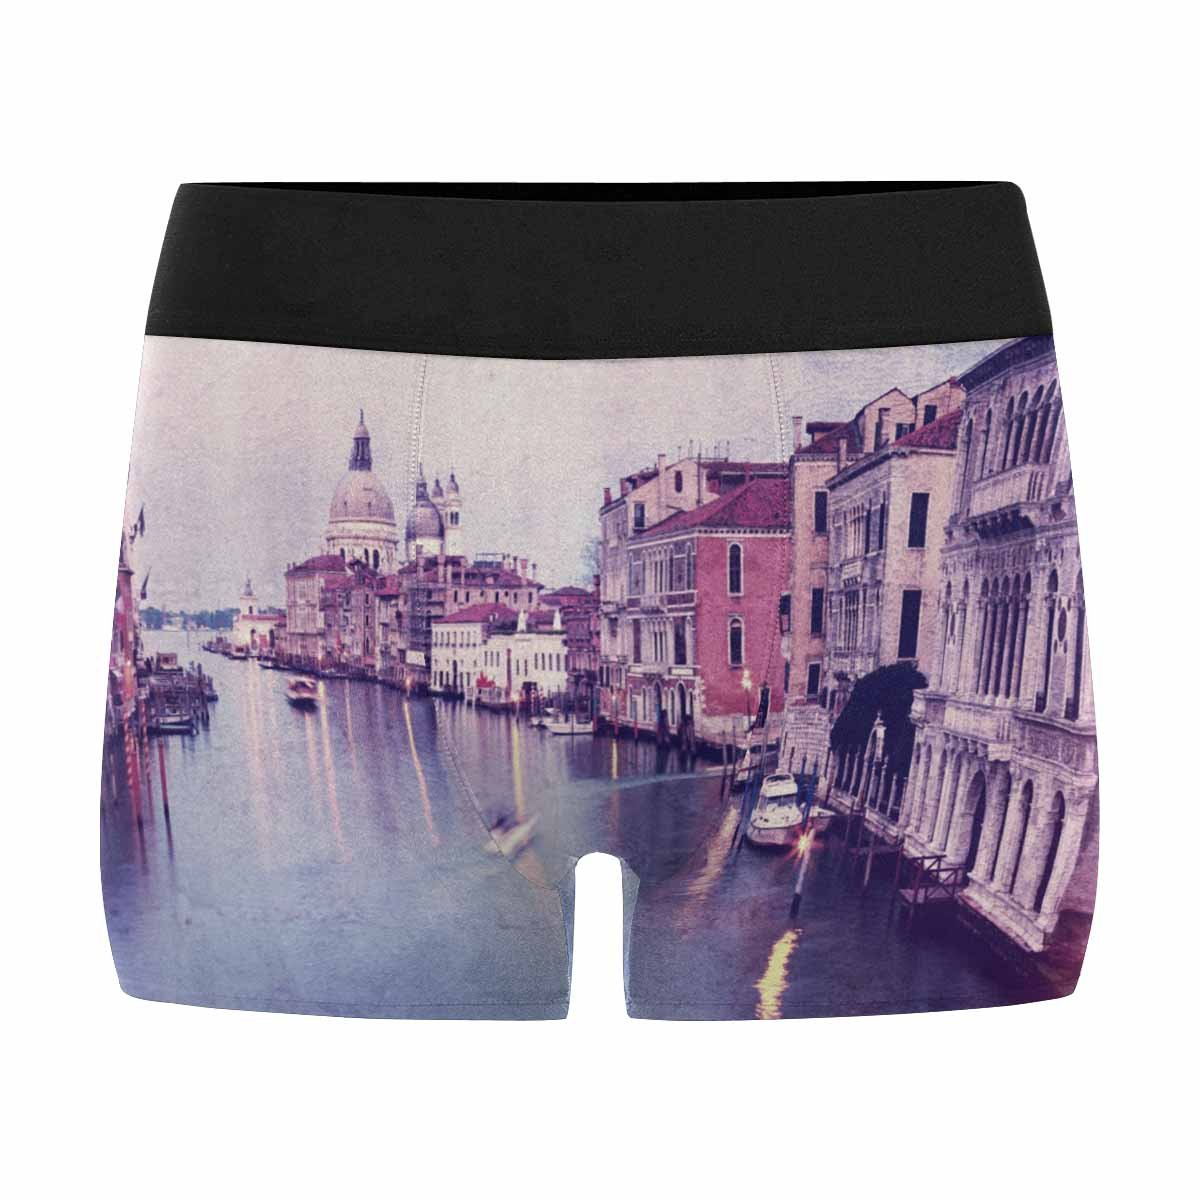 XS-3XL Italy Venice INTERESTPRINT Custom Mens Boxer Briefs Retro Style Image of Grand Canal at Sunset